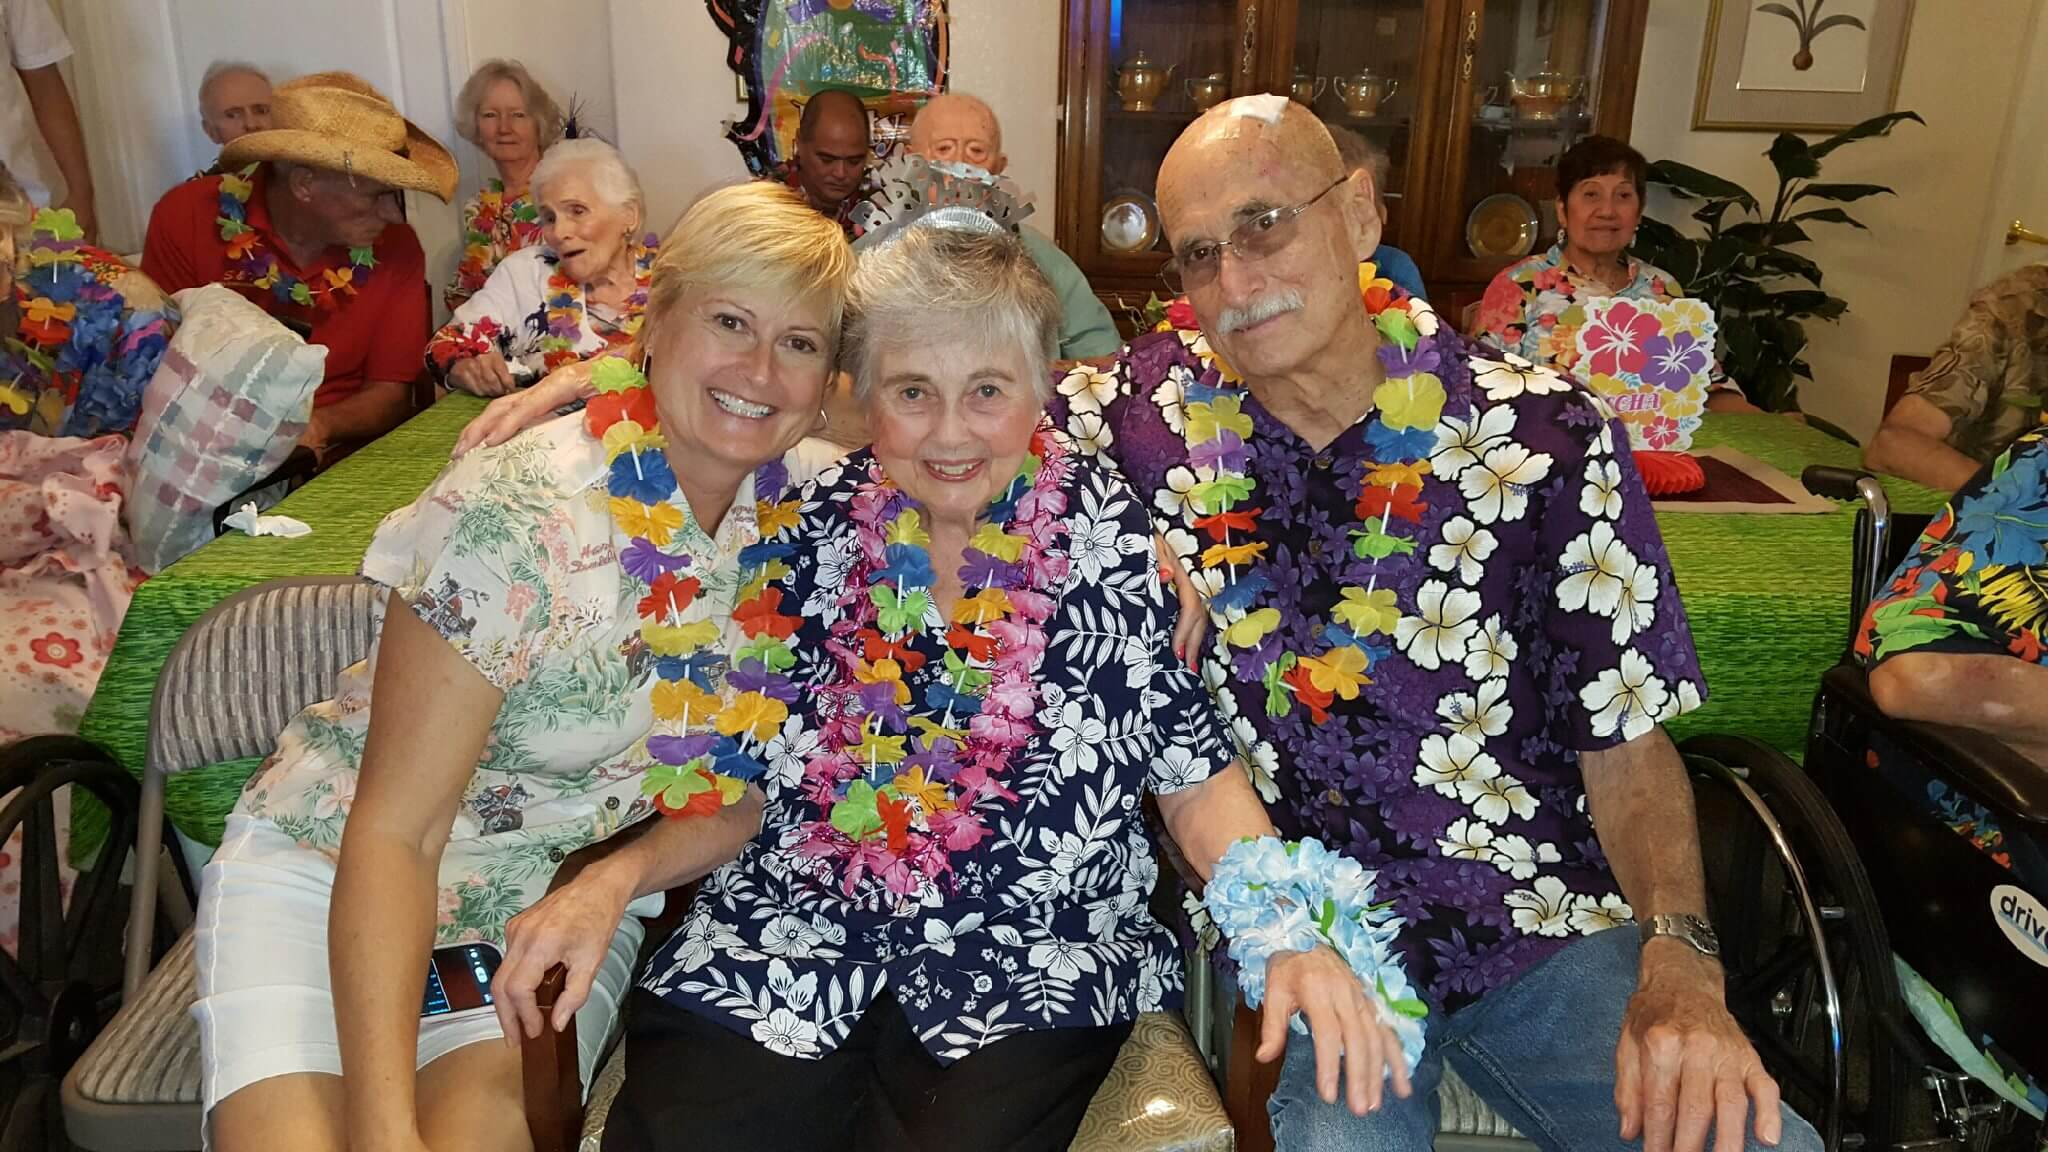 Eden Adult Care Facility | Senior Assisted Living Home Activities